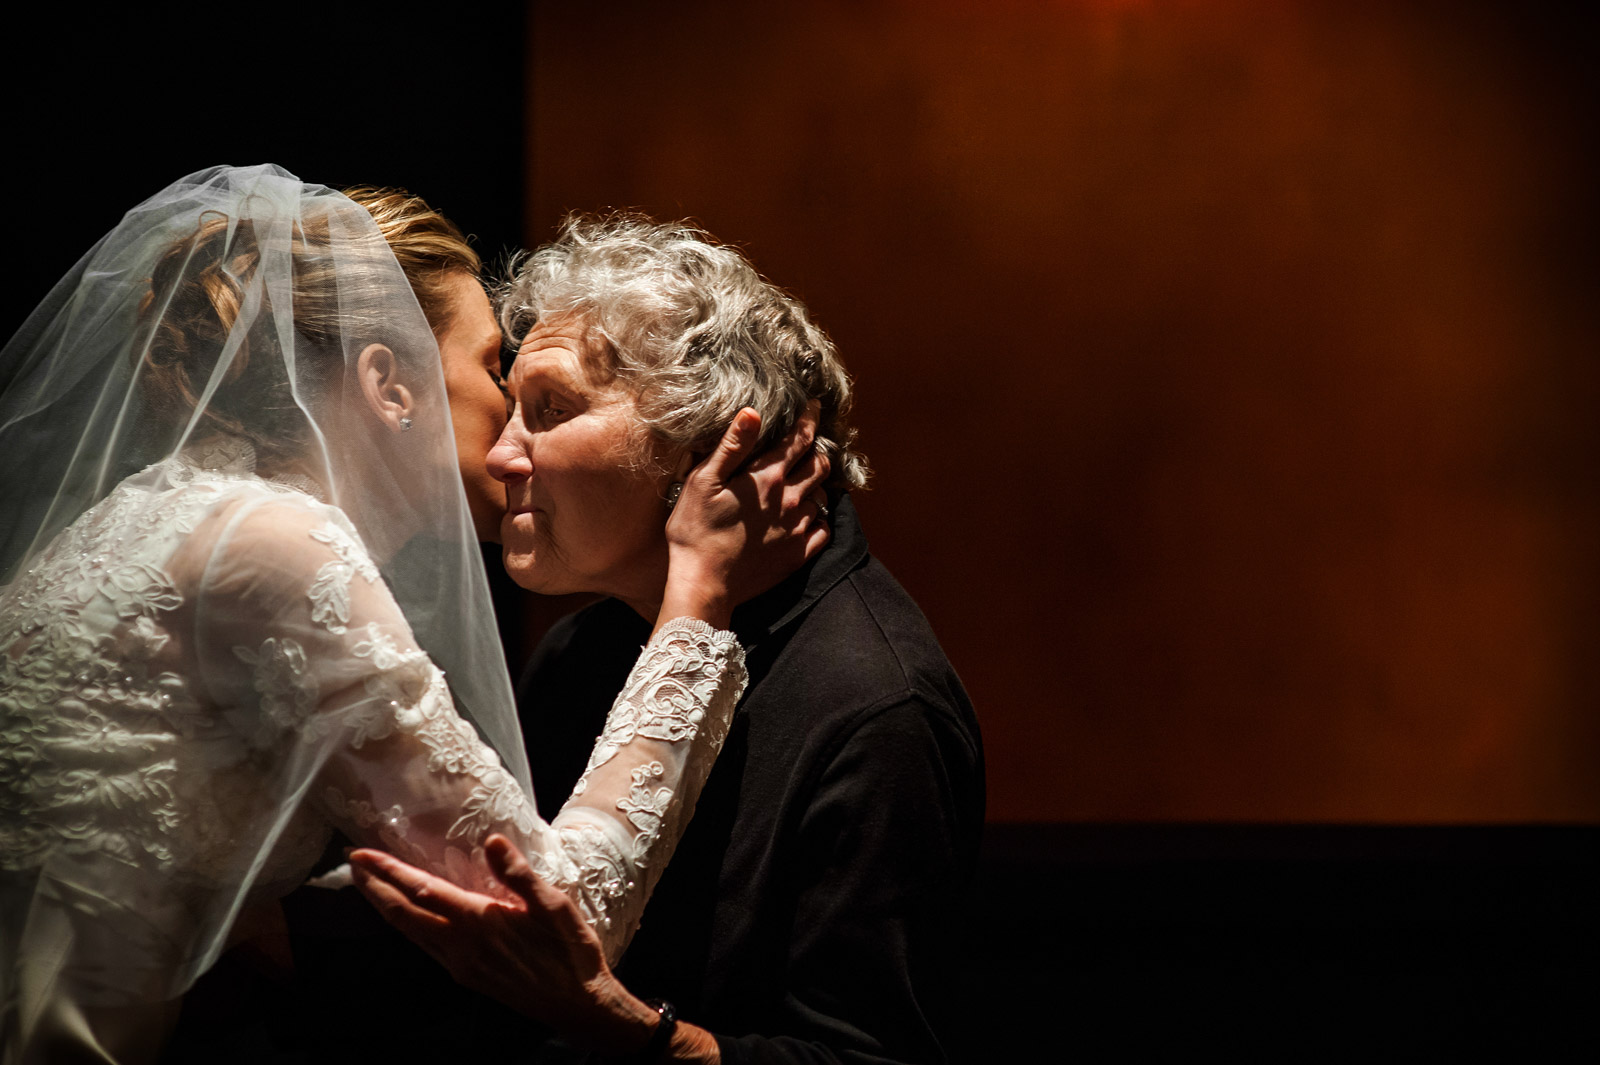 Bride wearing veil kissing grandmother